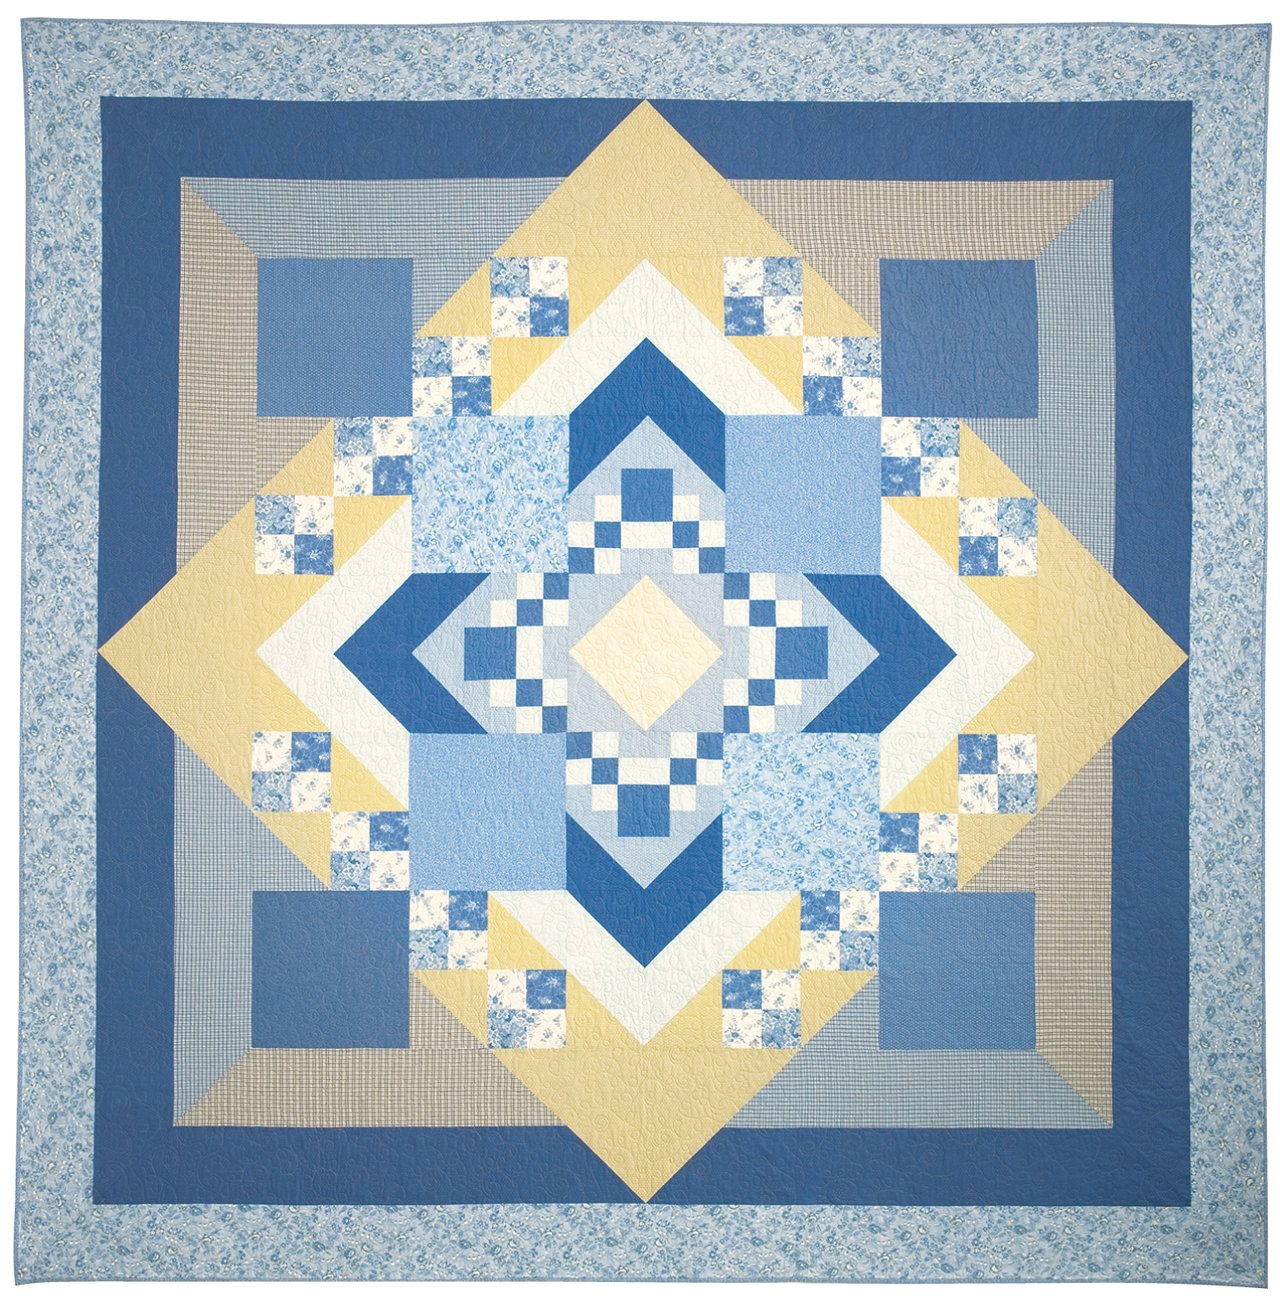 Easy Quilts for Beginners and Beyond: 14 Quilt Patterns from Quiltmaker Magazine by That Patchwork Place (Image #22)